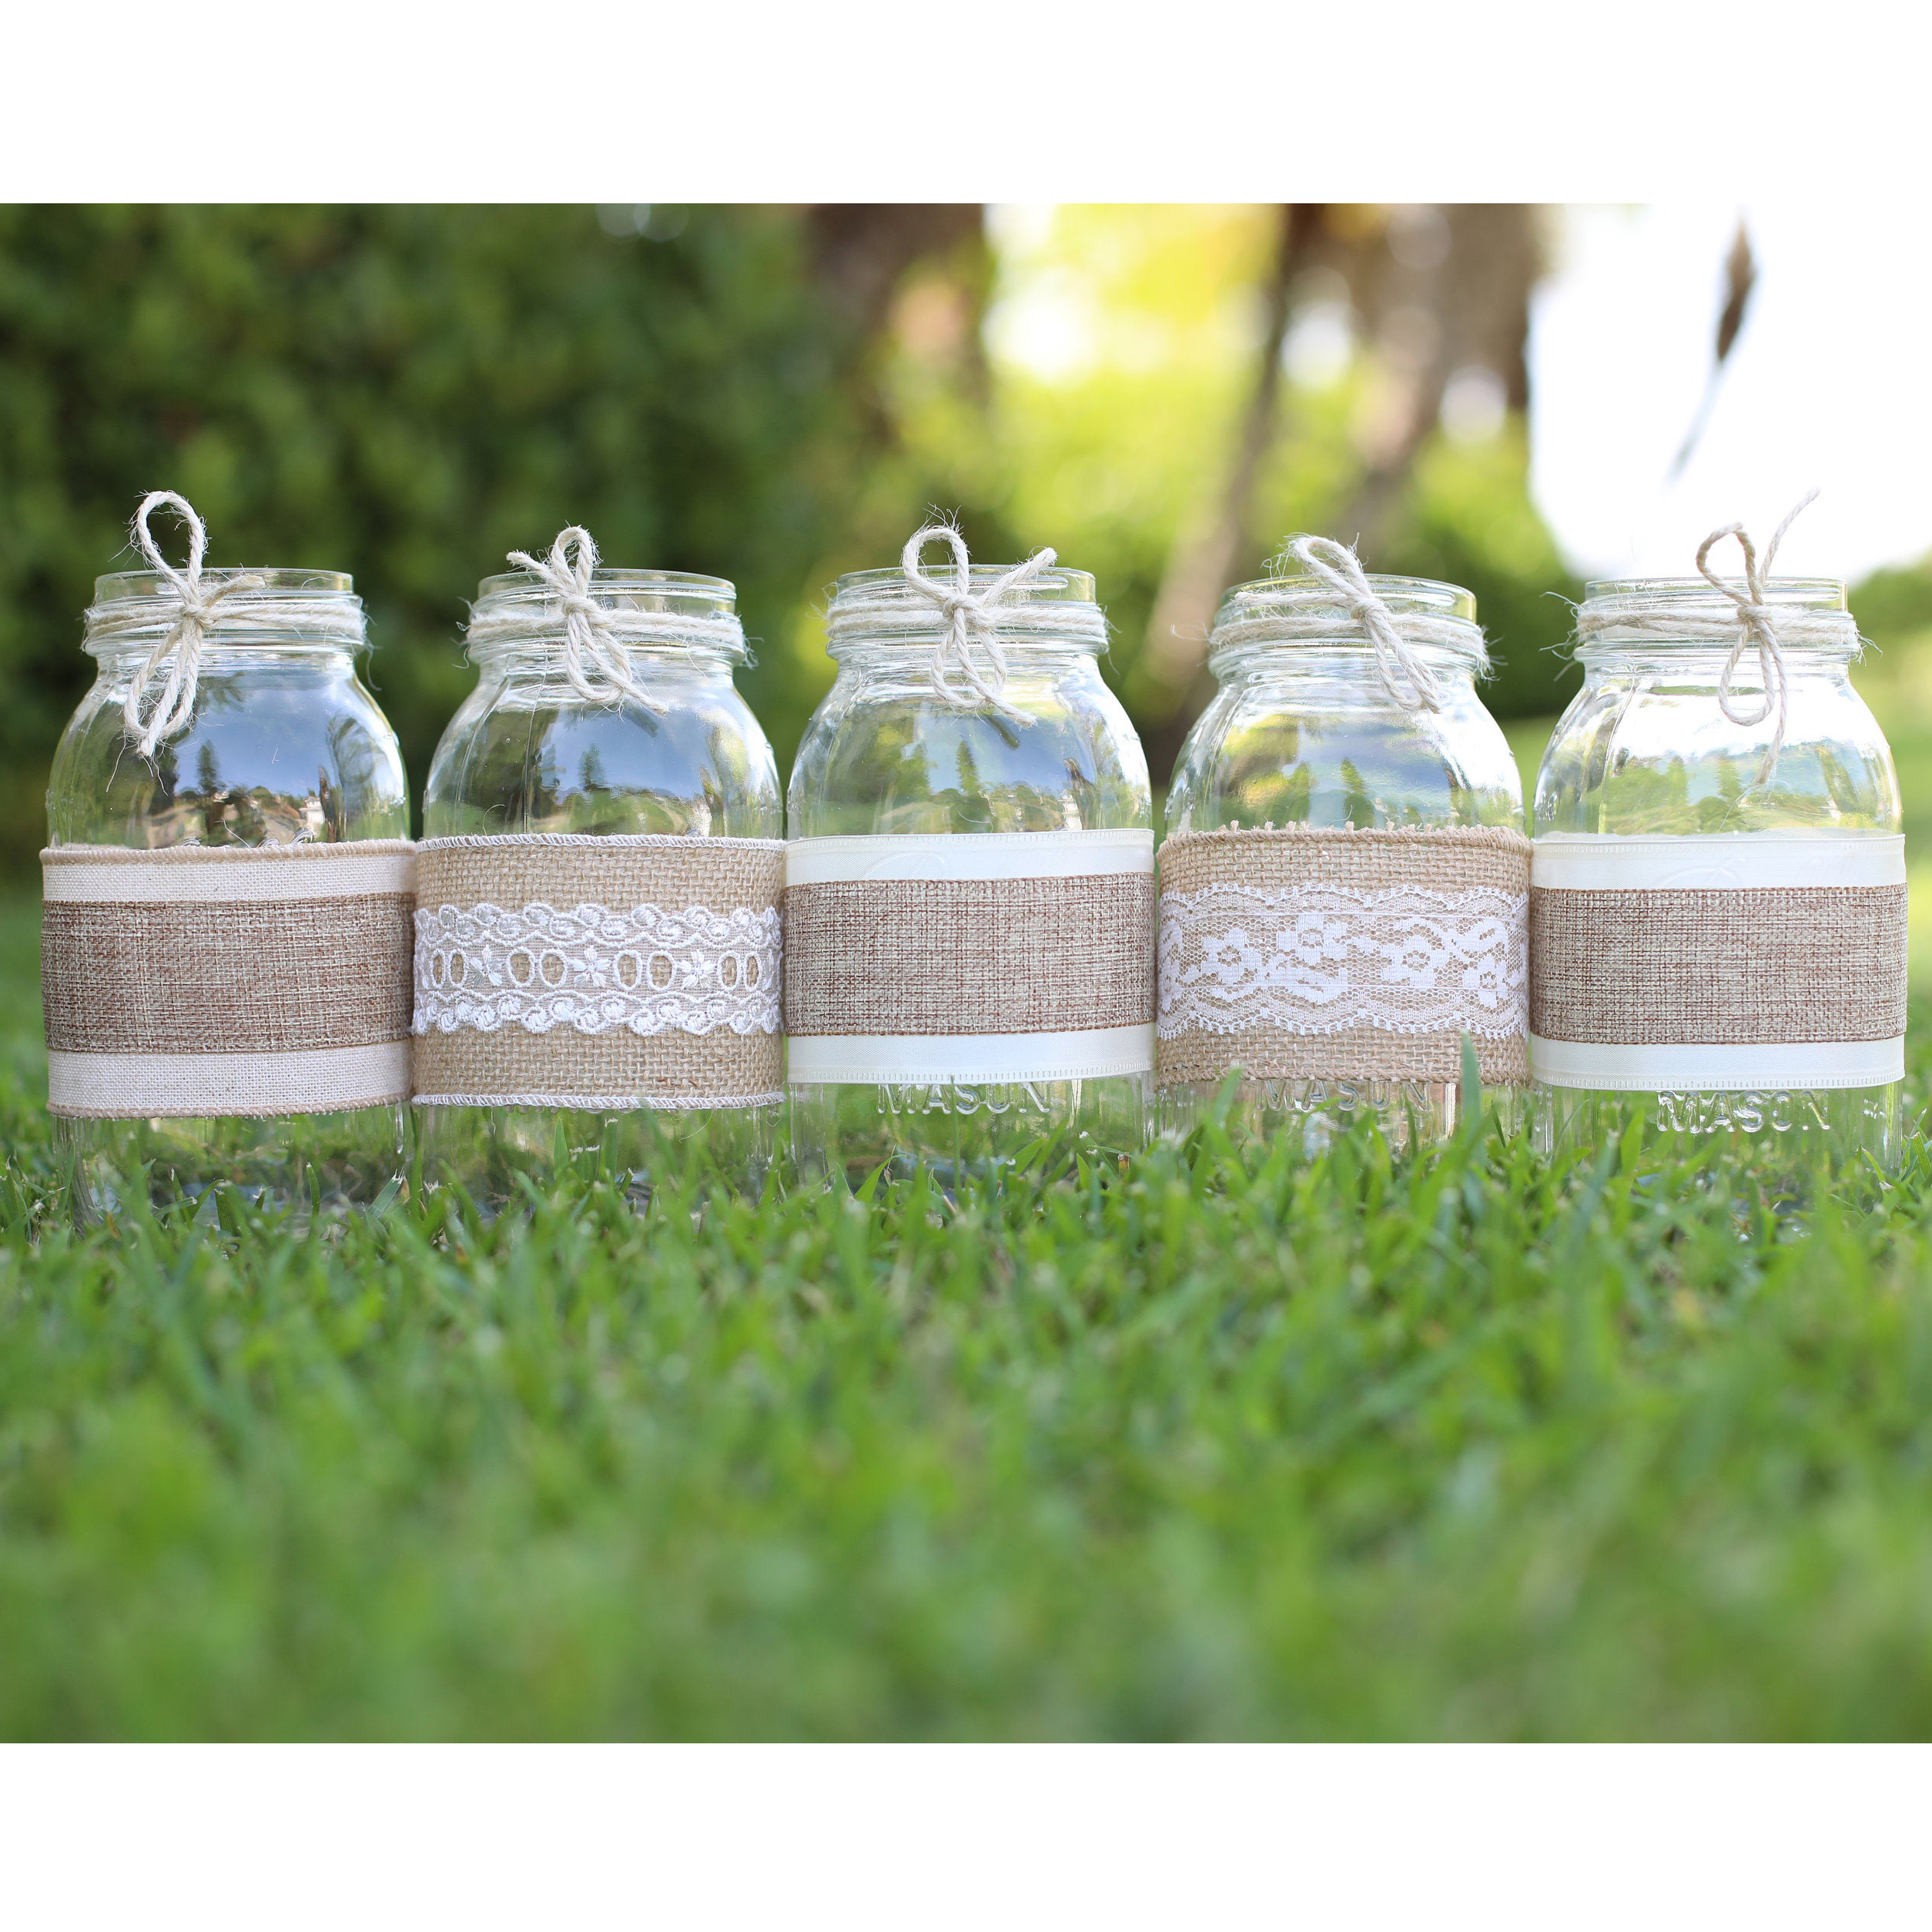 Our Similar Pick: Lace Burlap Mason Jars